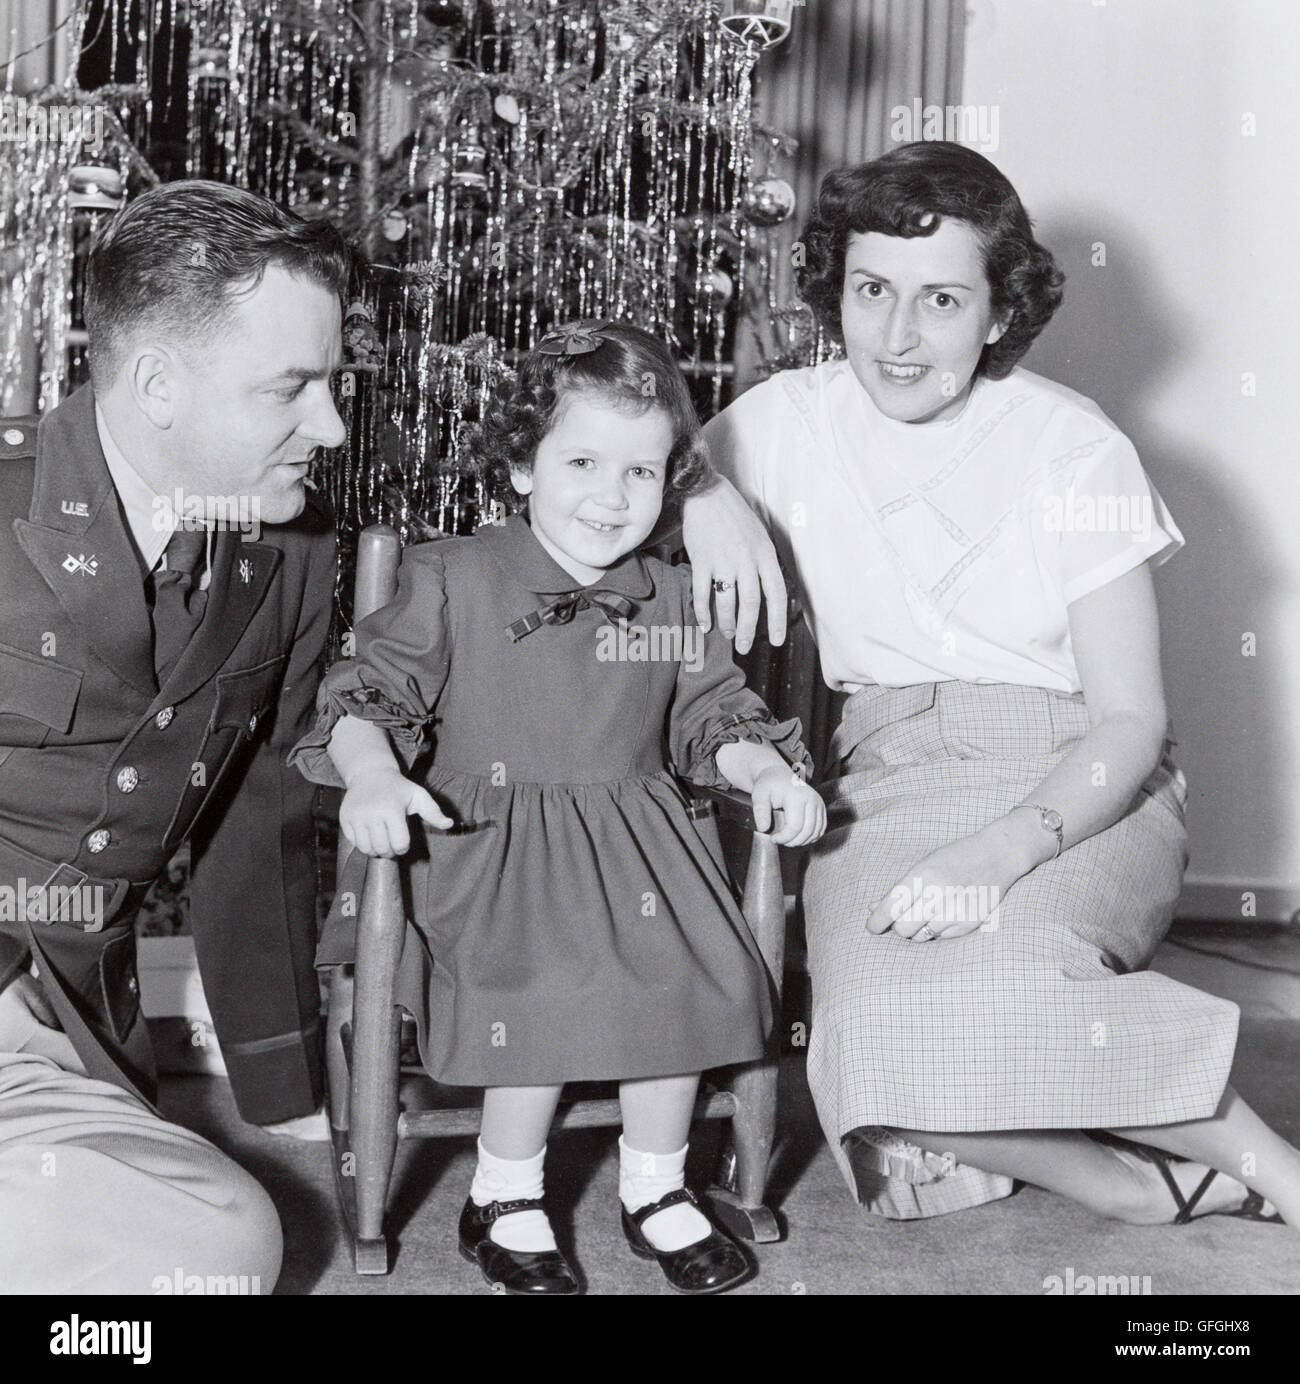 Vintage 1950's Christmas Photograph, Military Officer with Wife and Small Daughter in Front of Christmas Tree Stock Photo